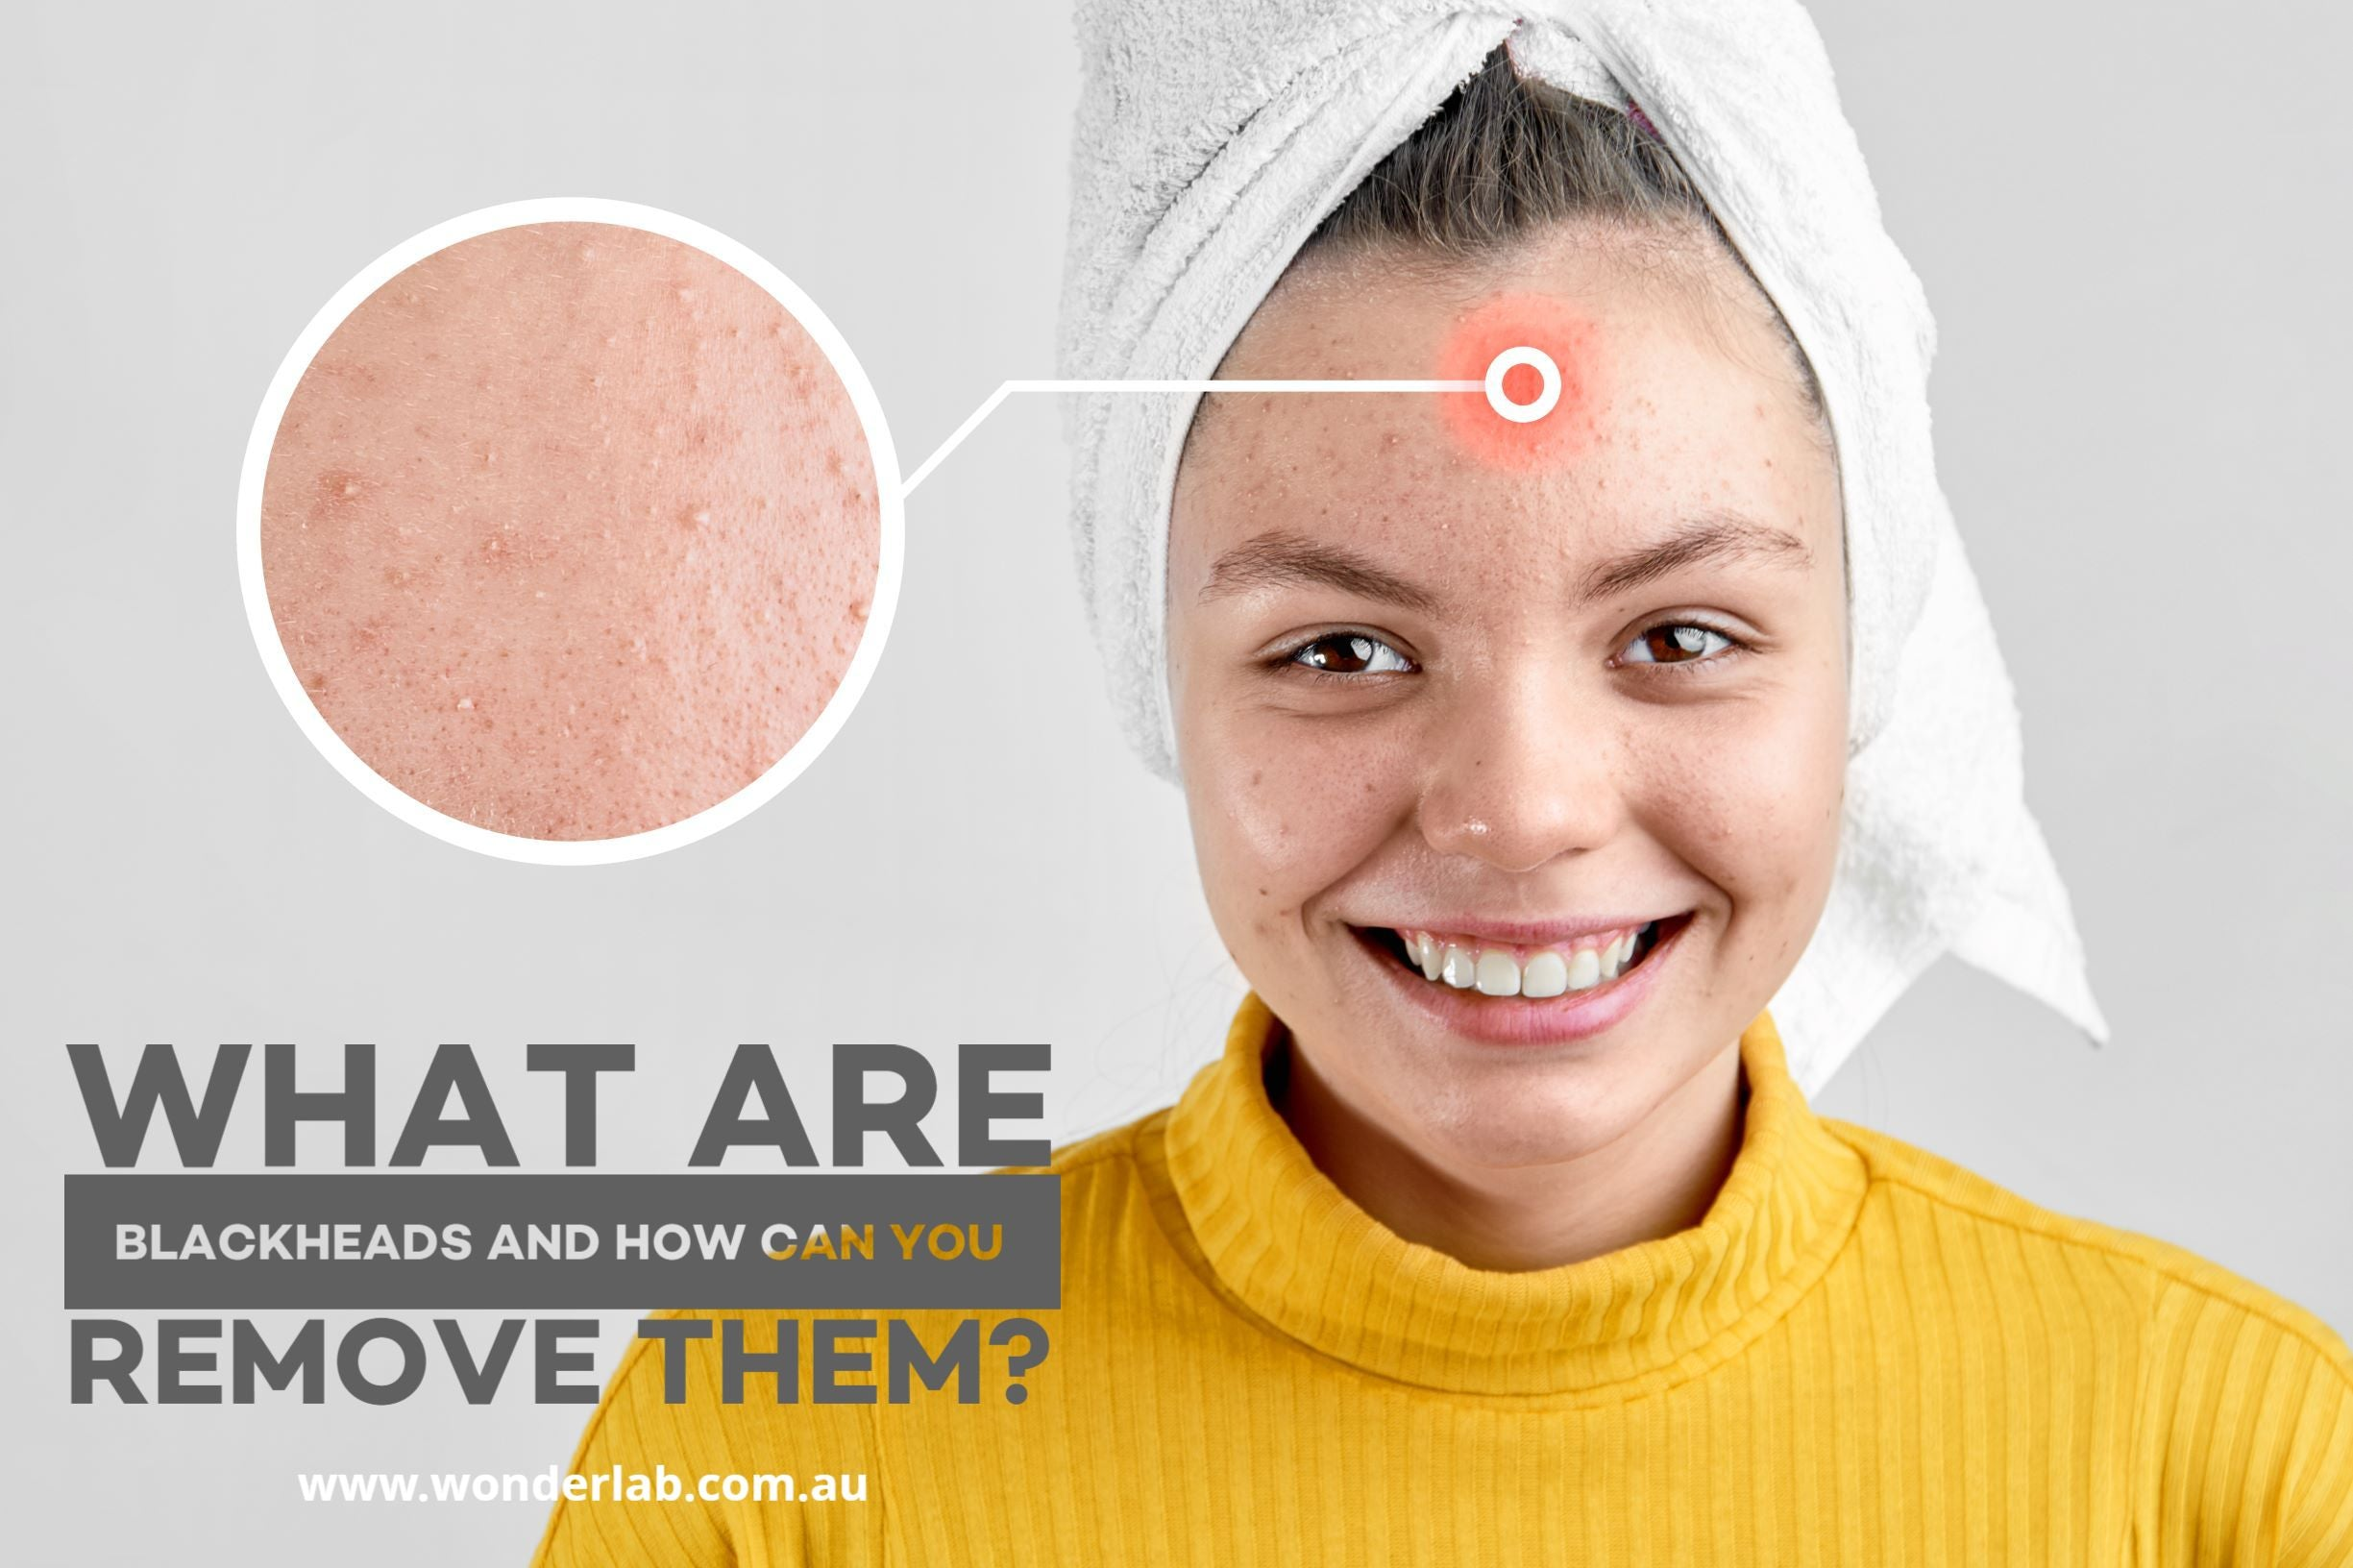 What are blackheads and how can you remove them